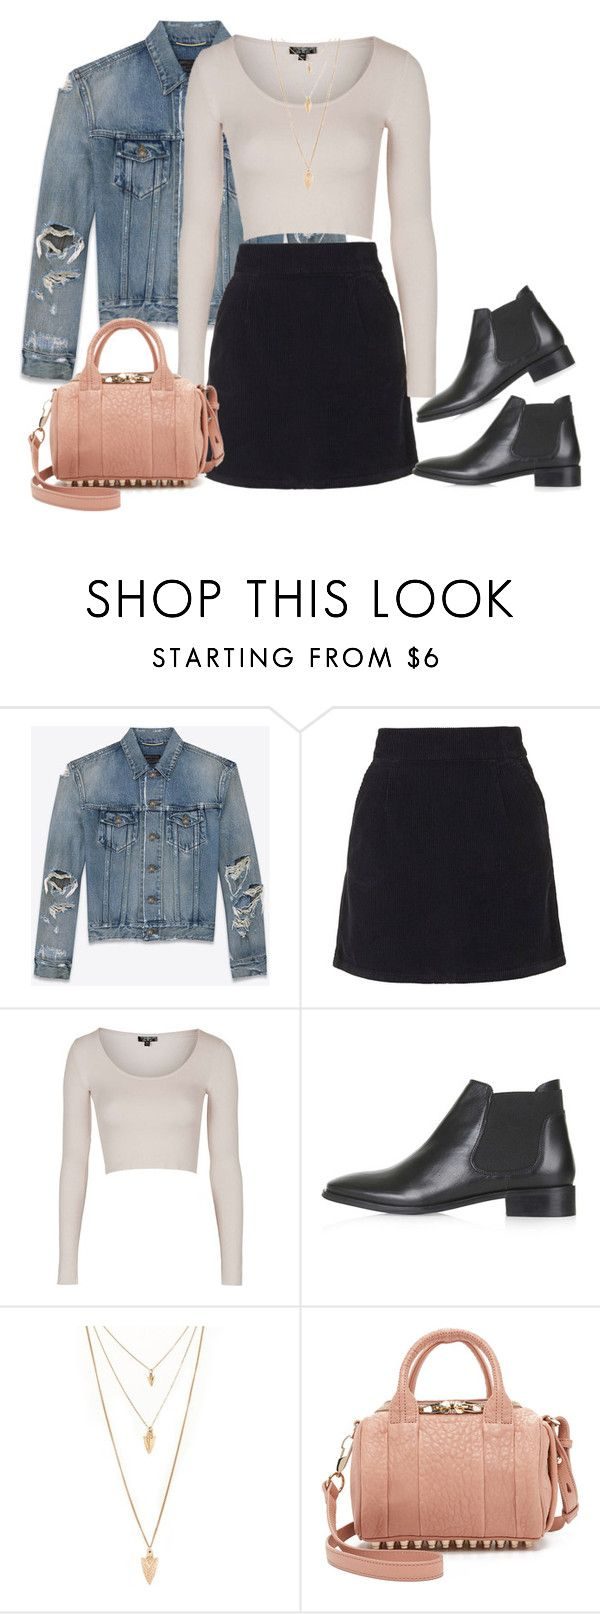 """Untitled #372"" by charlotte-down on Polyvore featuring Yves Saint Laurent, Topshop, Forever 21 and Alexander Wang"